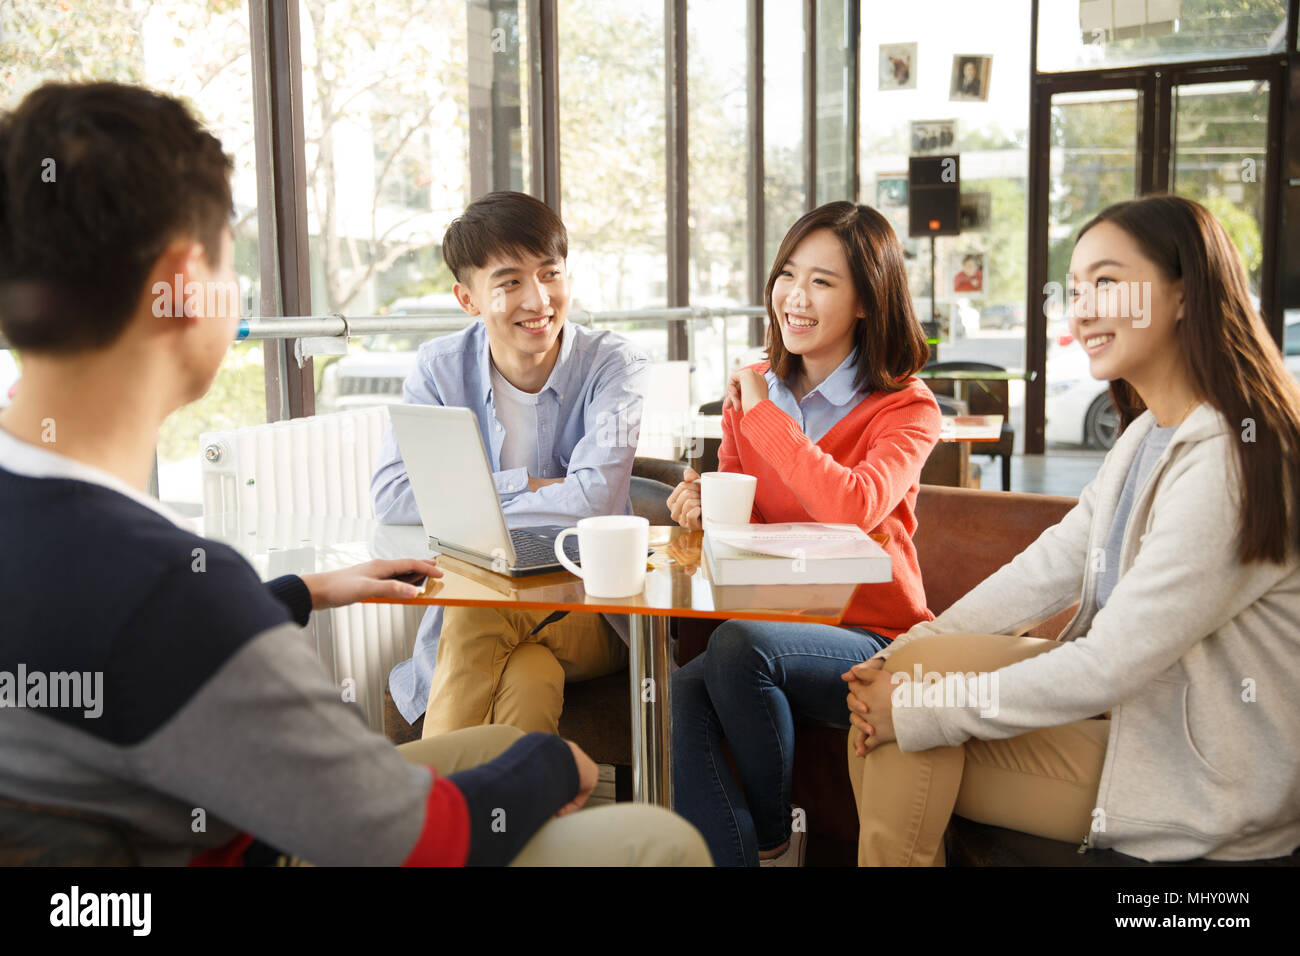 Young men and women in the coffee shop - Stock Image